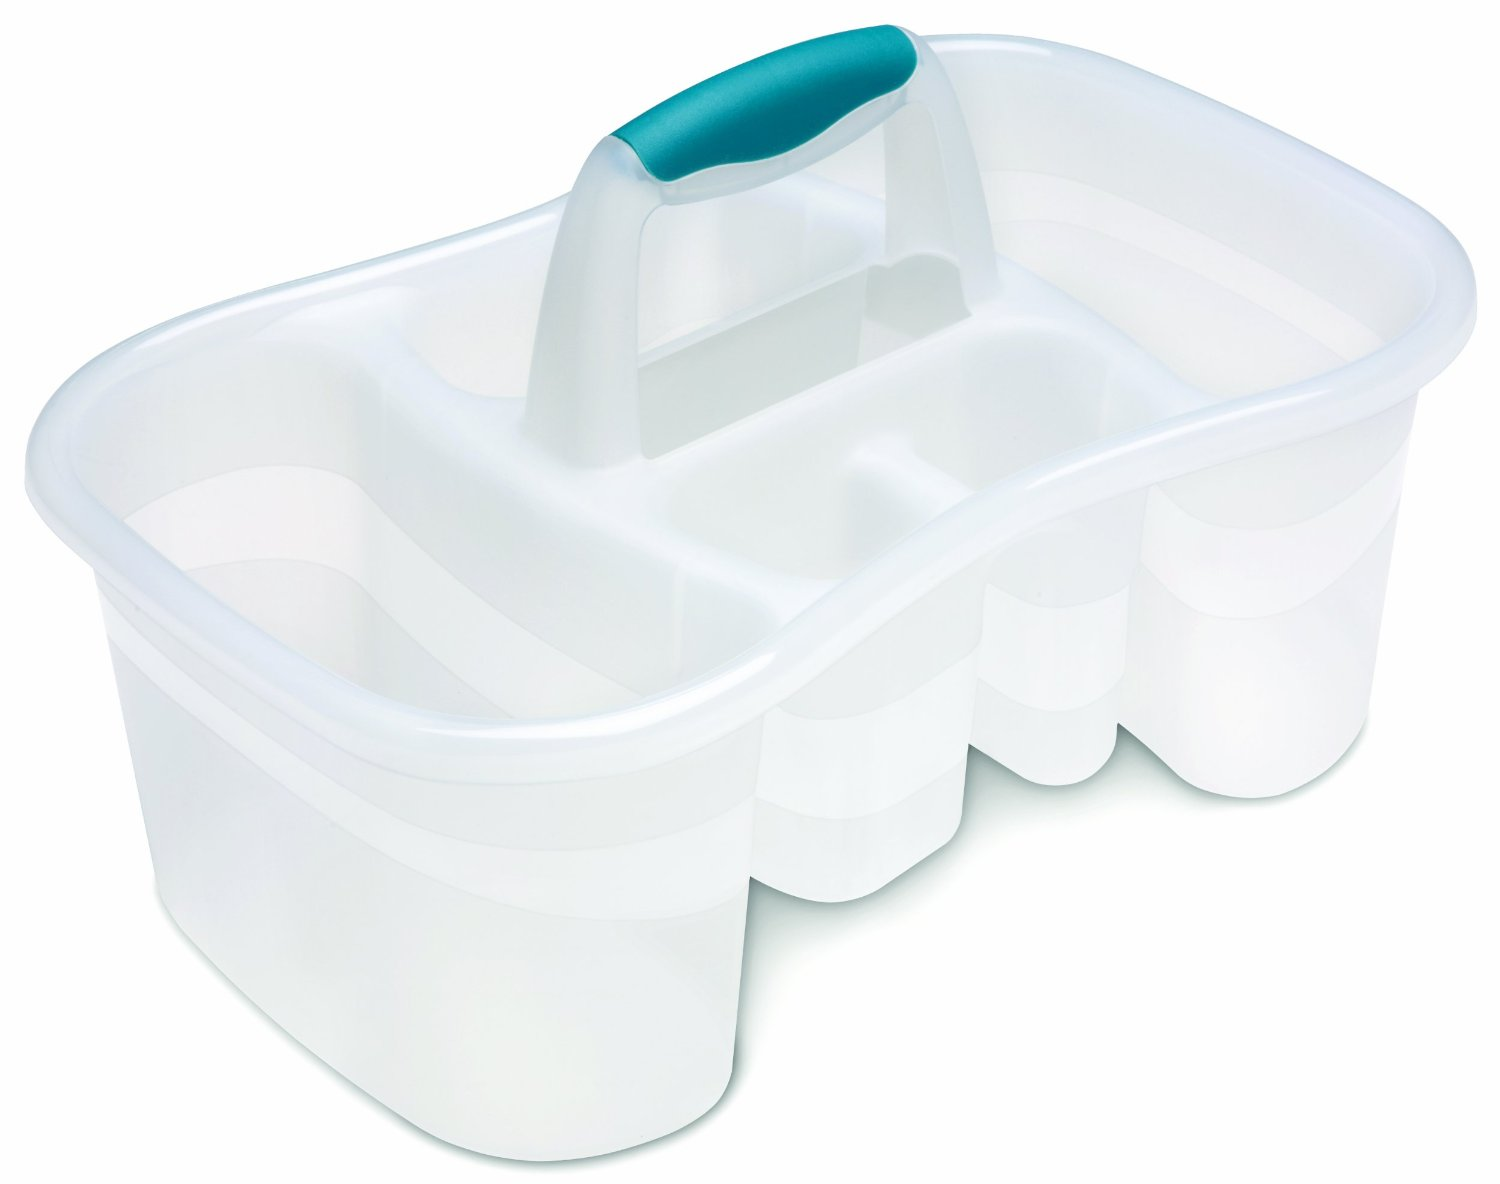 Sterilite Shower Caddy | Federal Correctional Supply Service